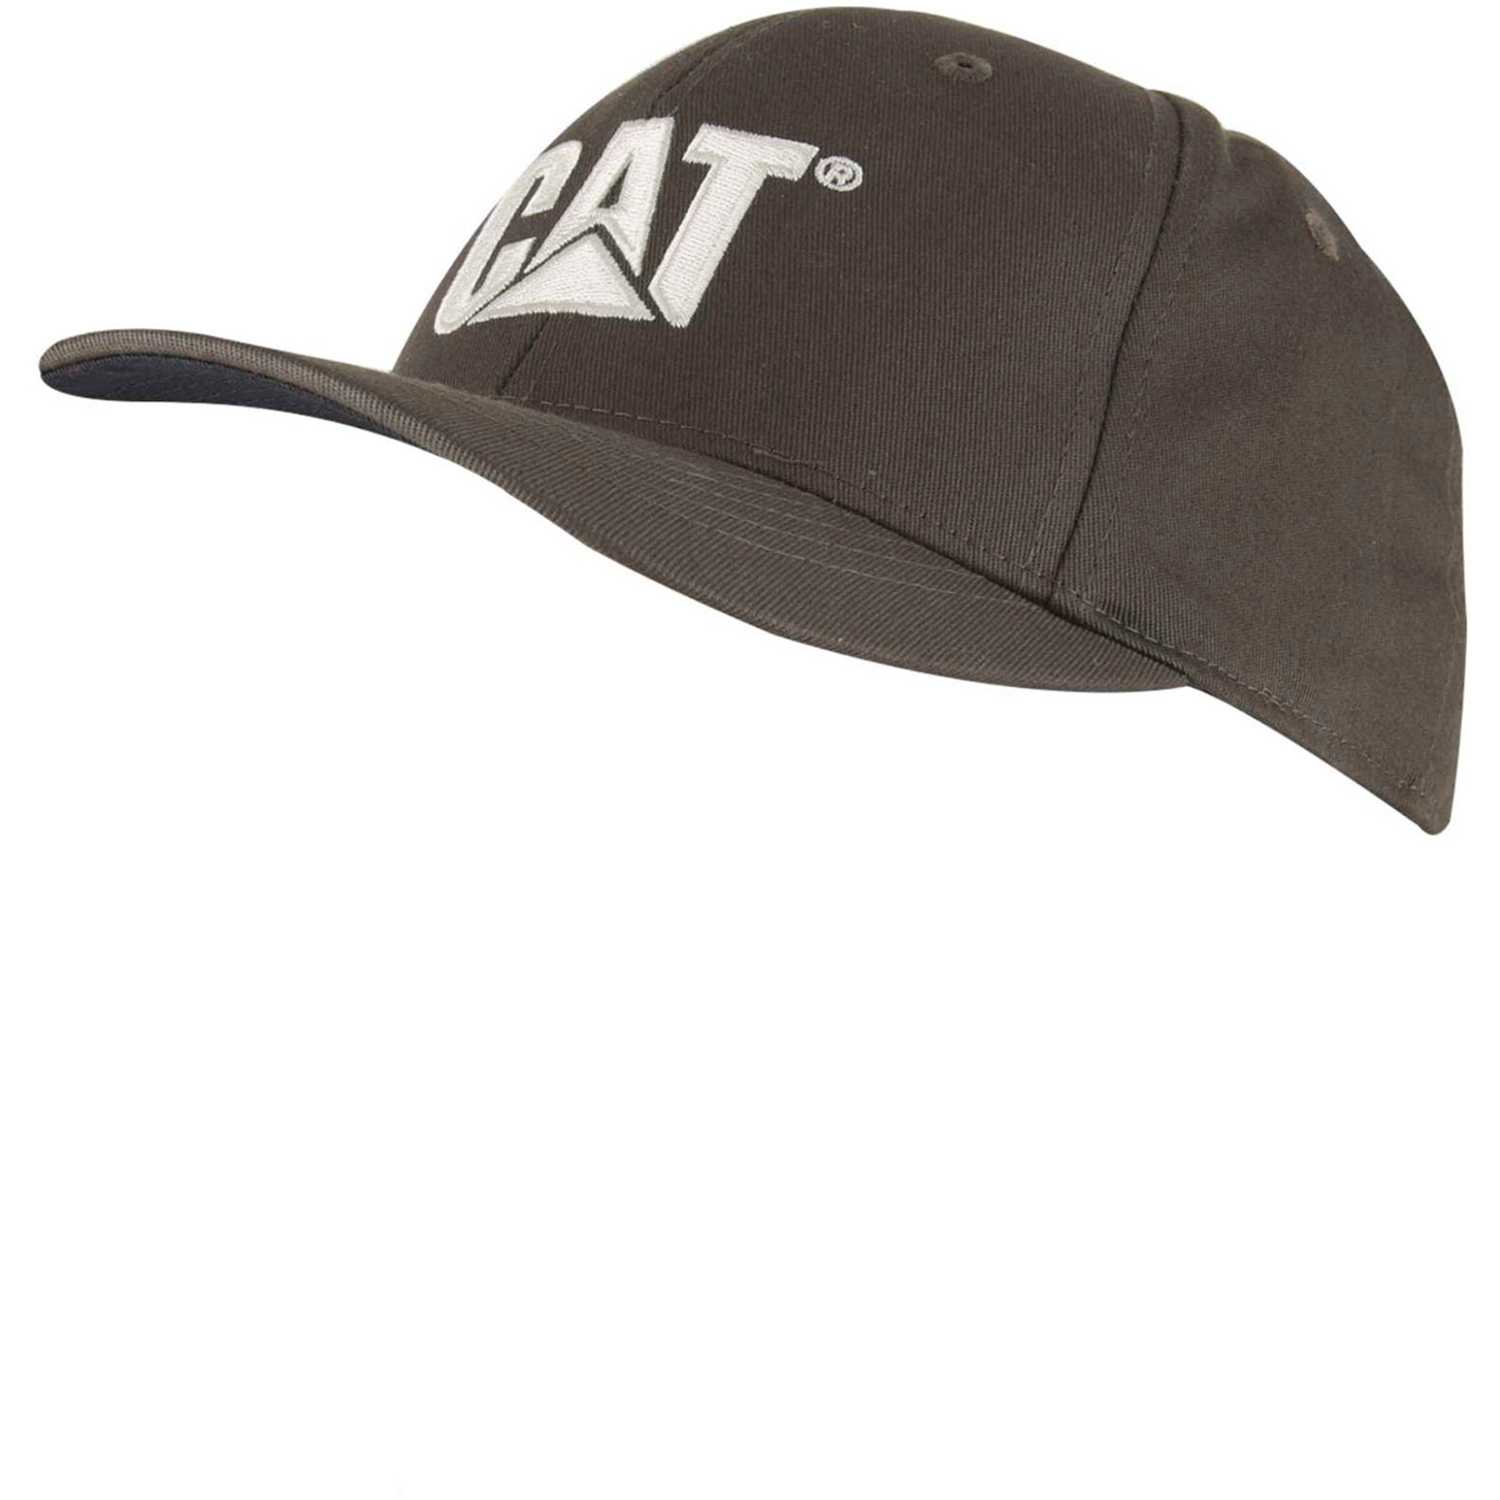 CAT classic logo hat Marron Gorros de Baseball